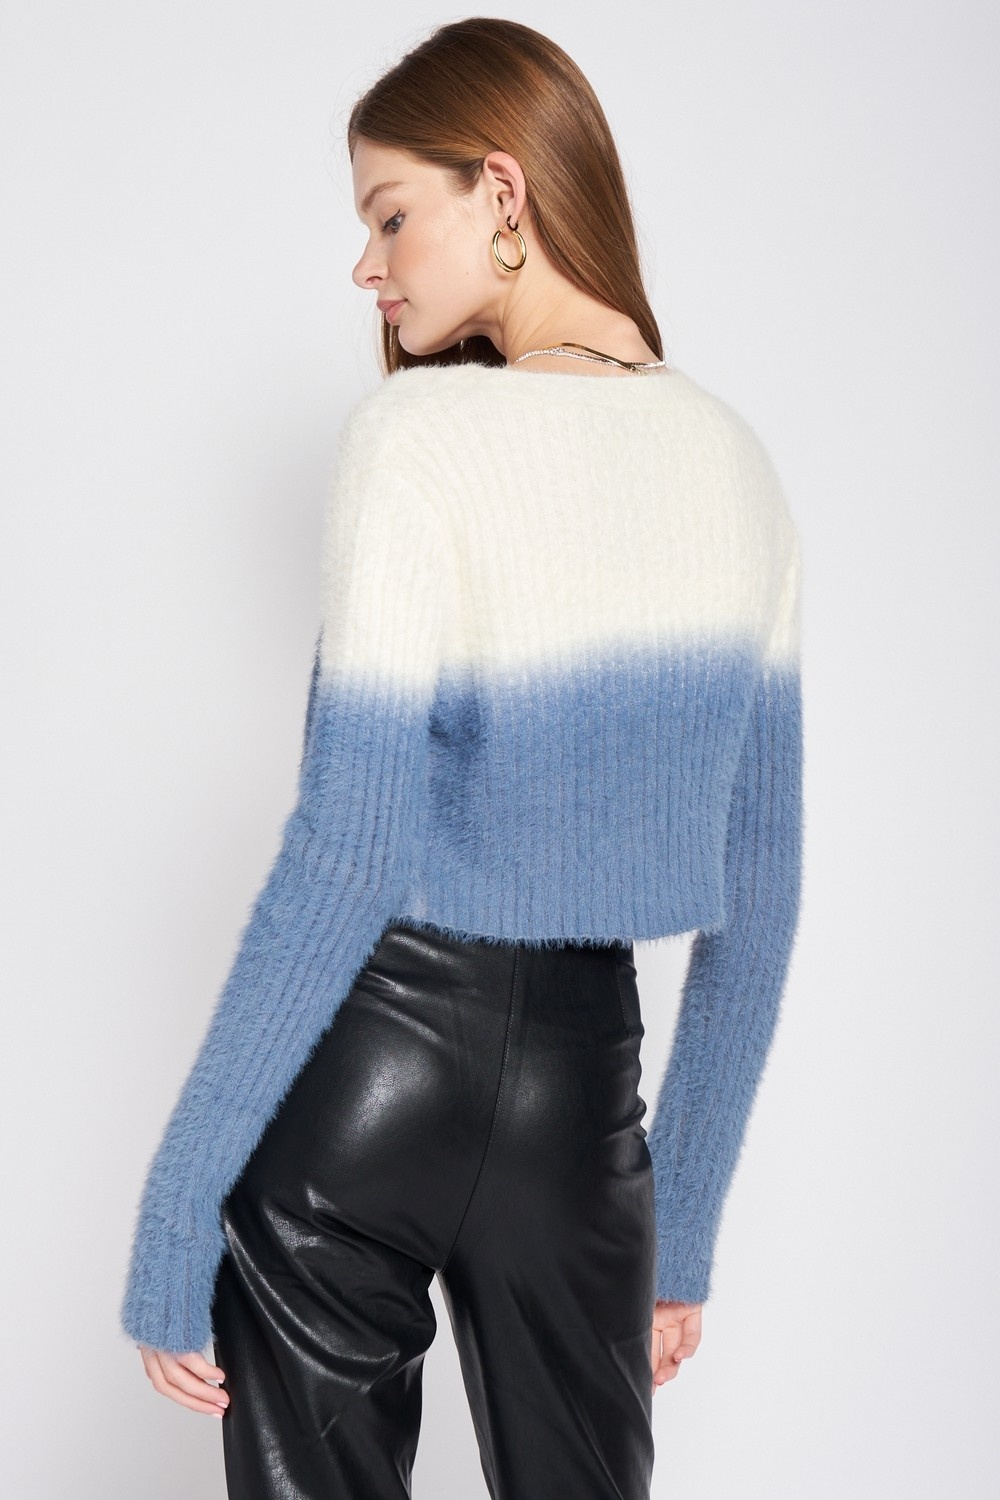 Haze Ombre Cropped Cardigan